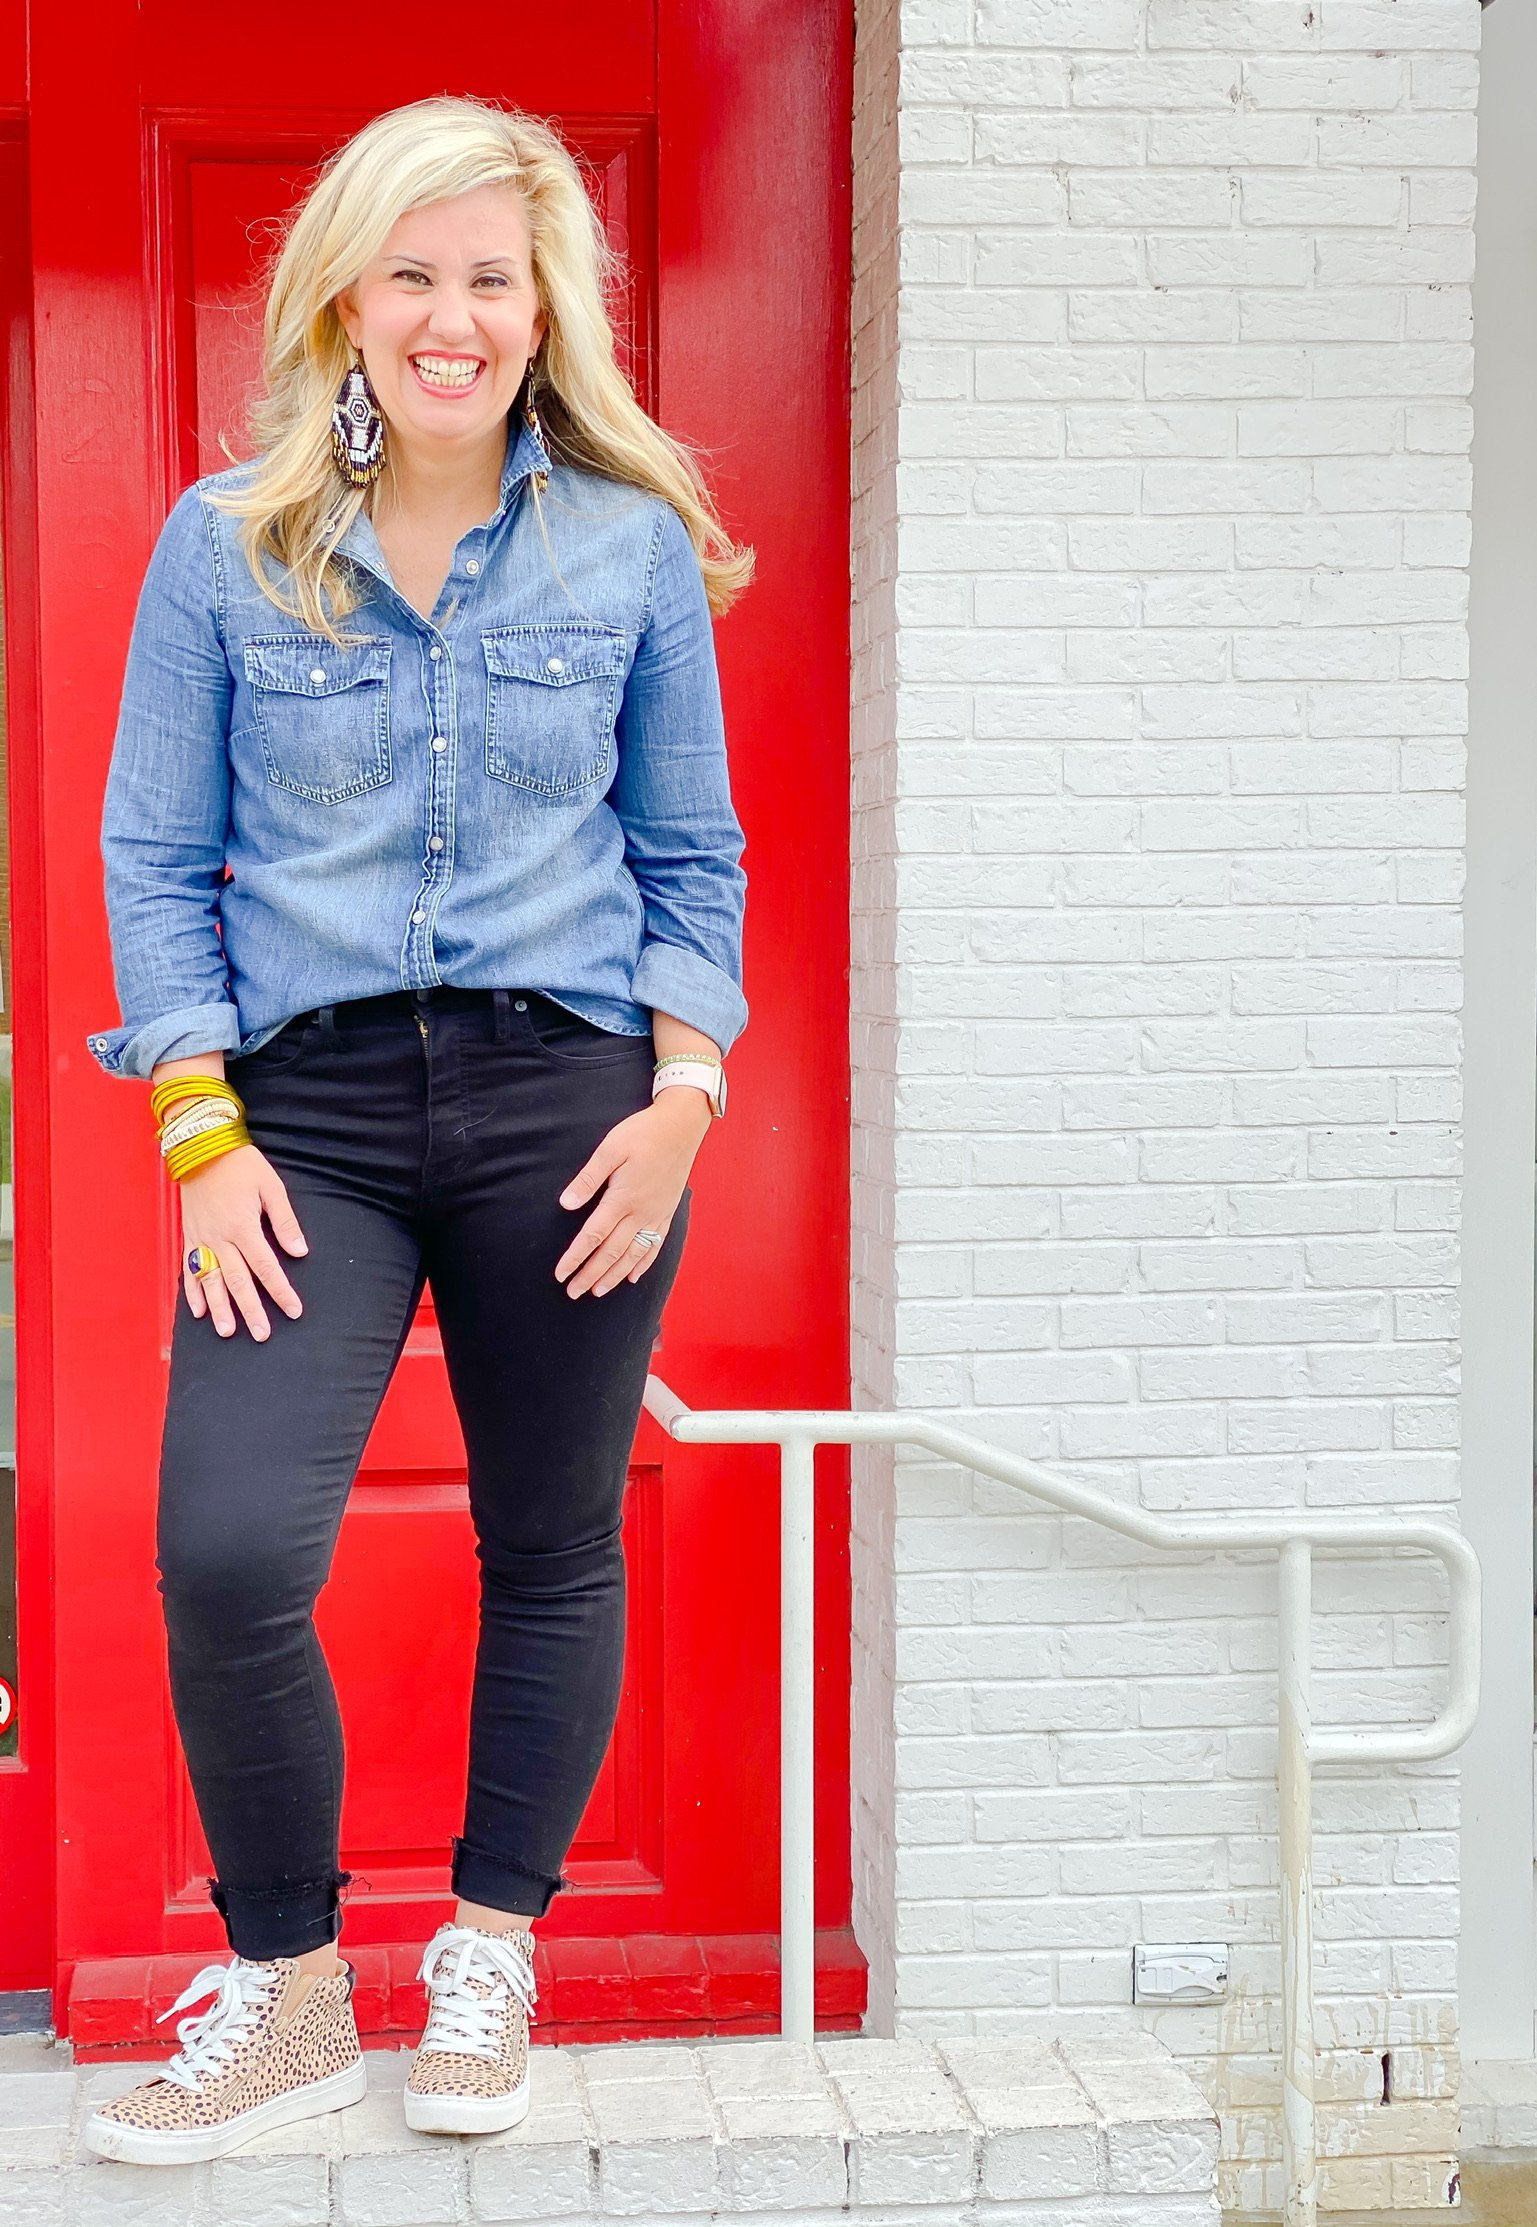 denim top tucked with black jean